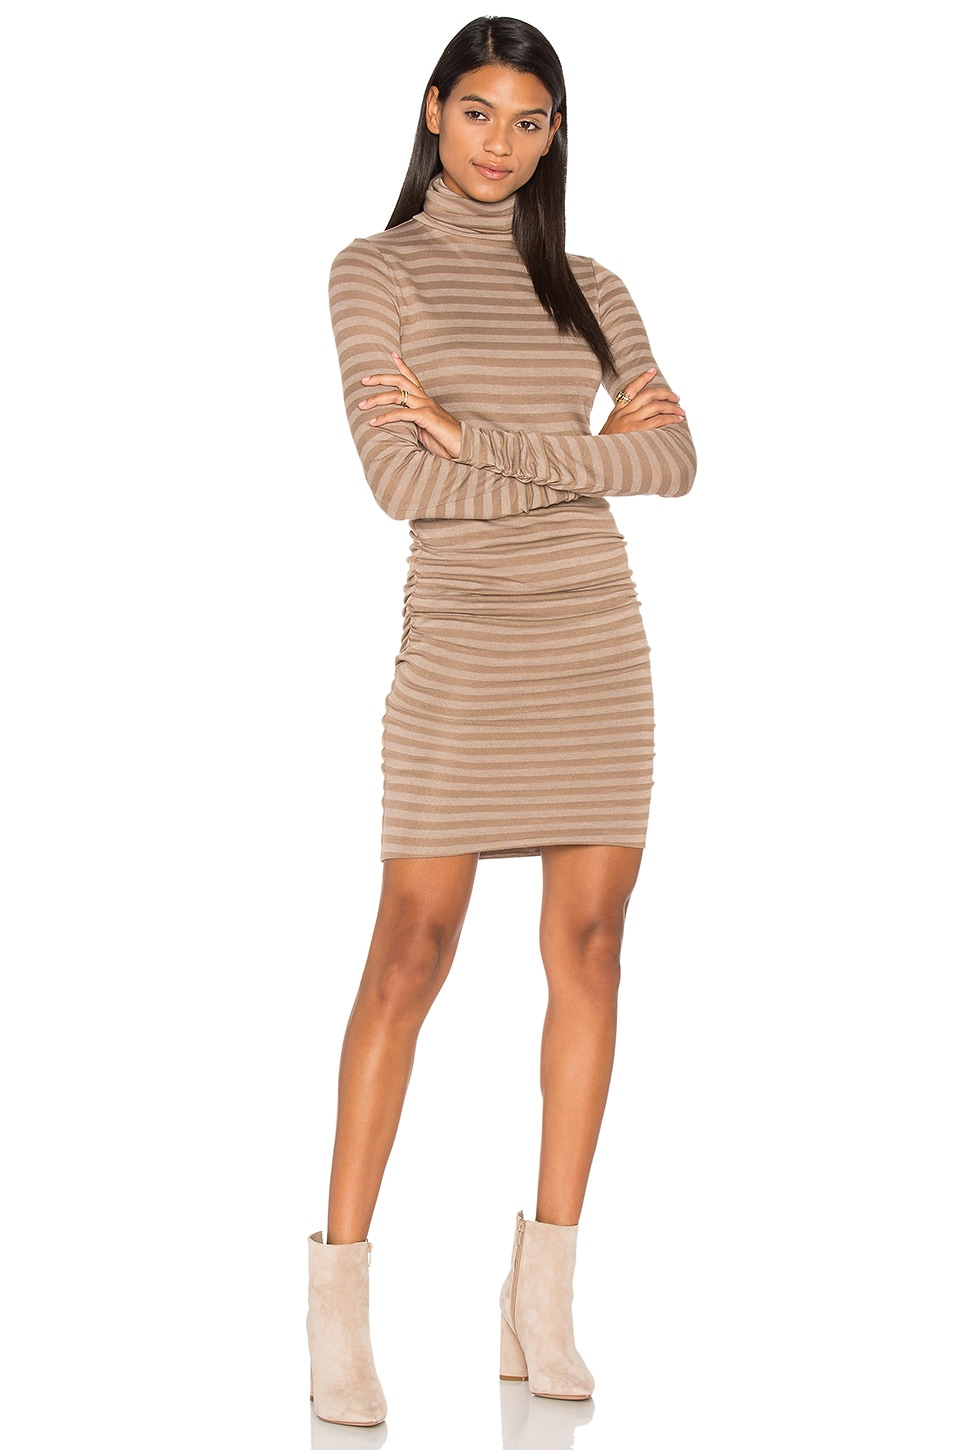 twenty Luxe Turtleneck Dress in Heather Rye